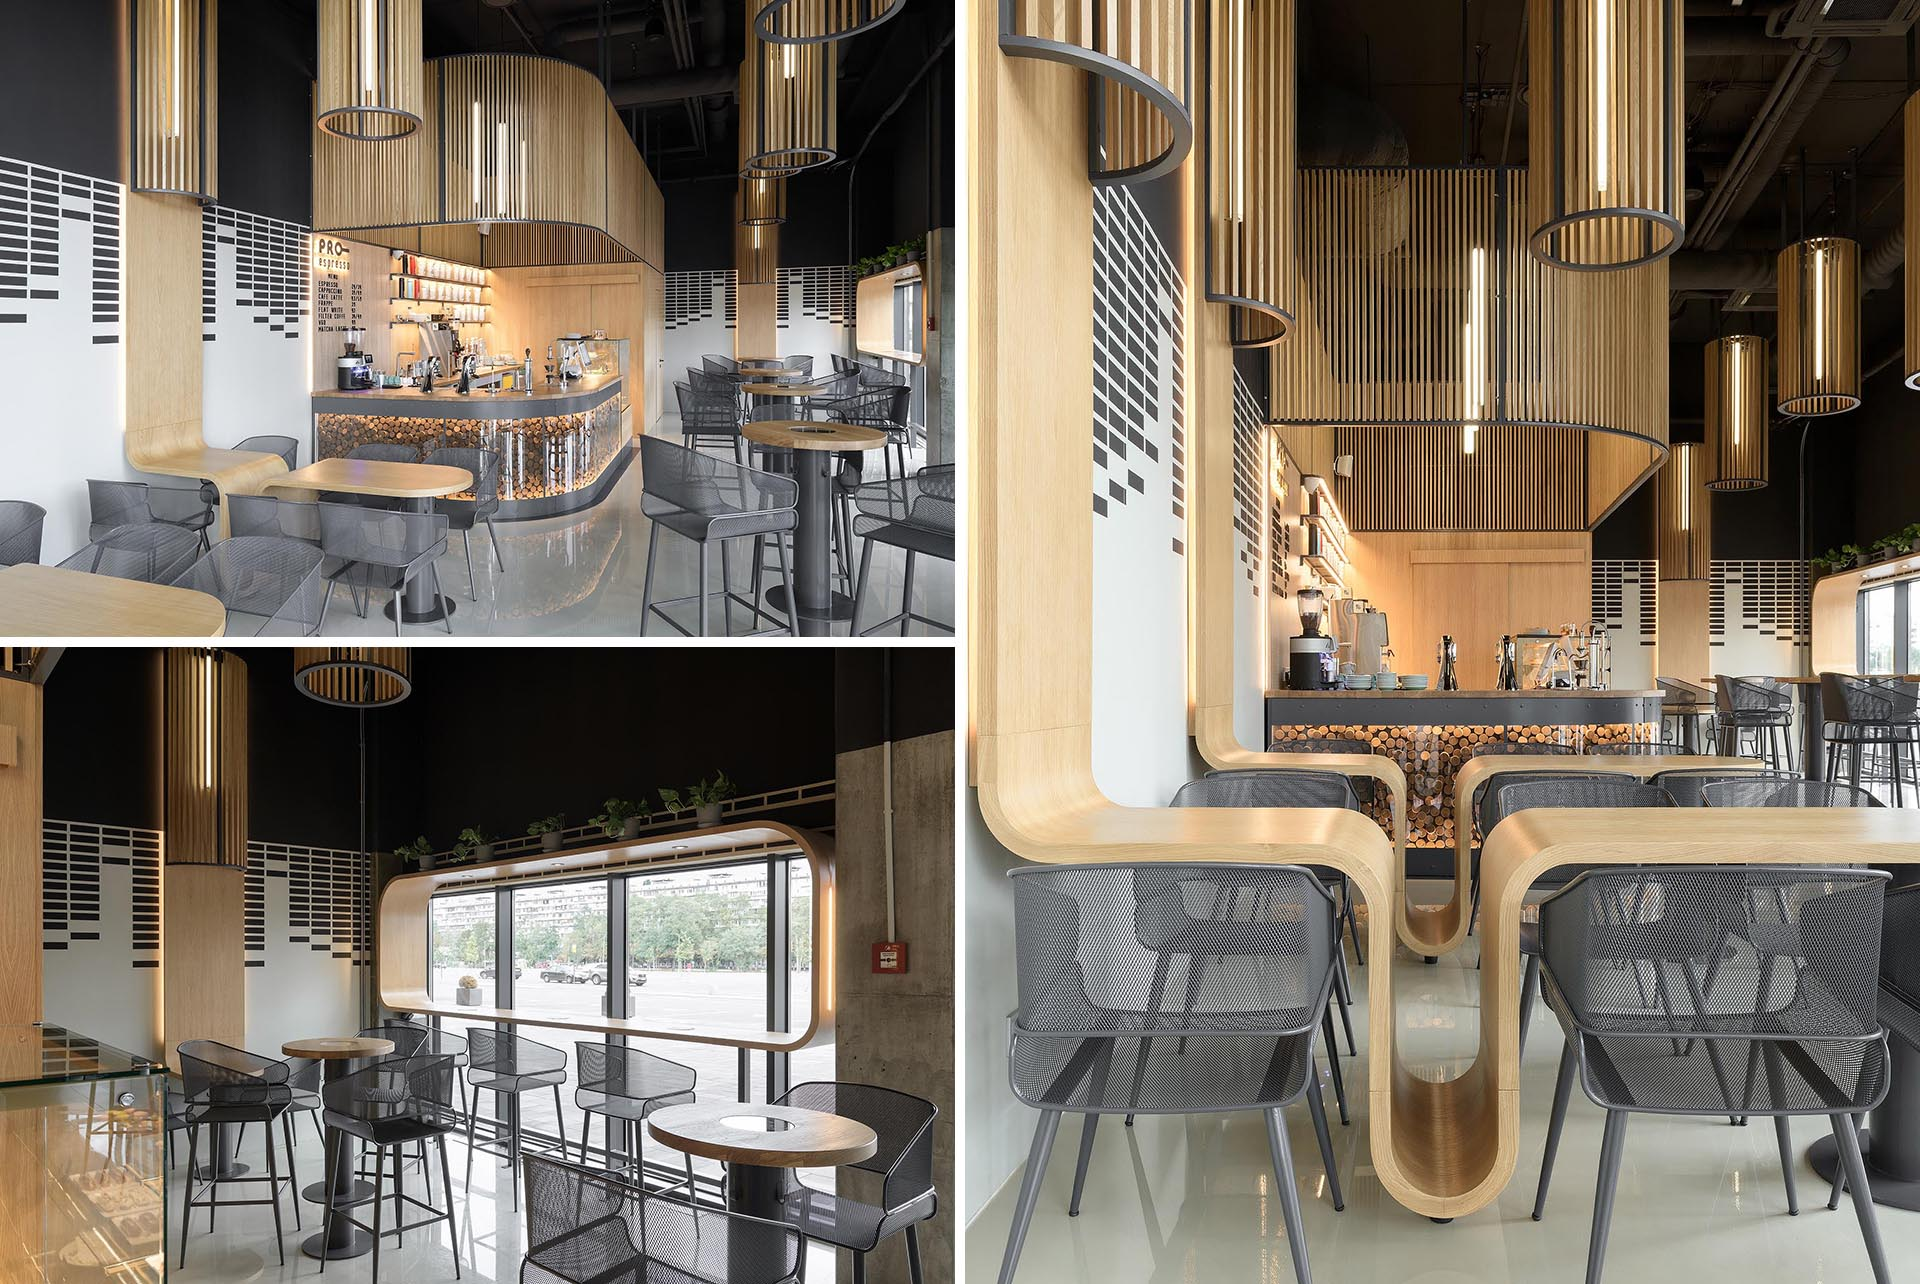 A modern coffee shop with custom designed tables that include space for placing bags.